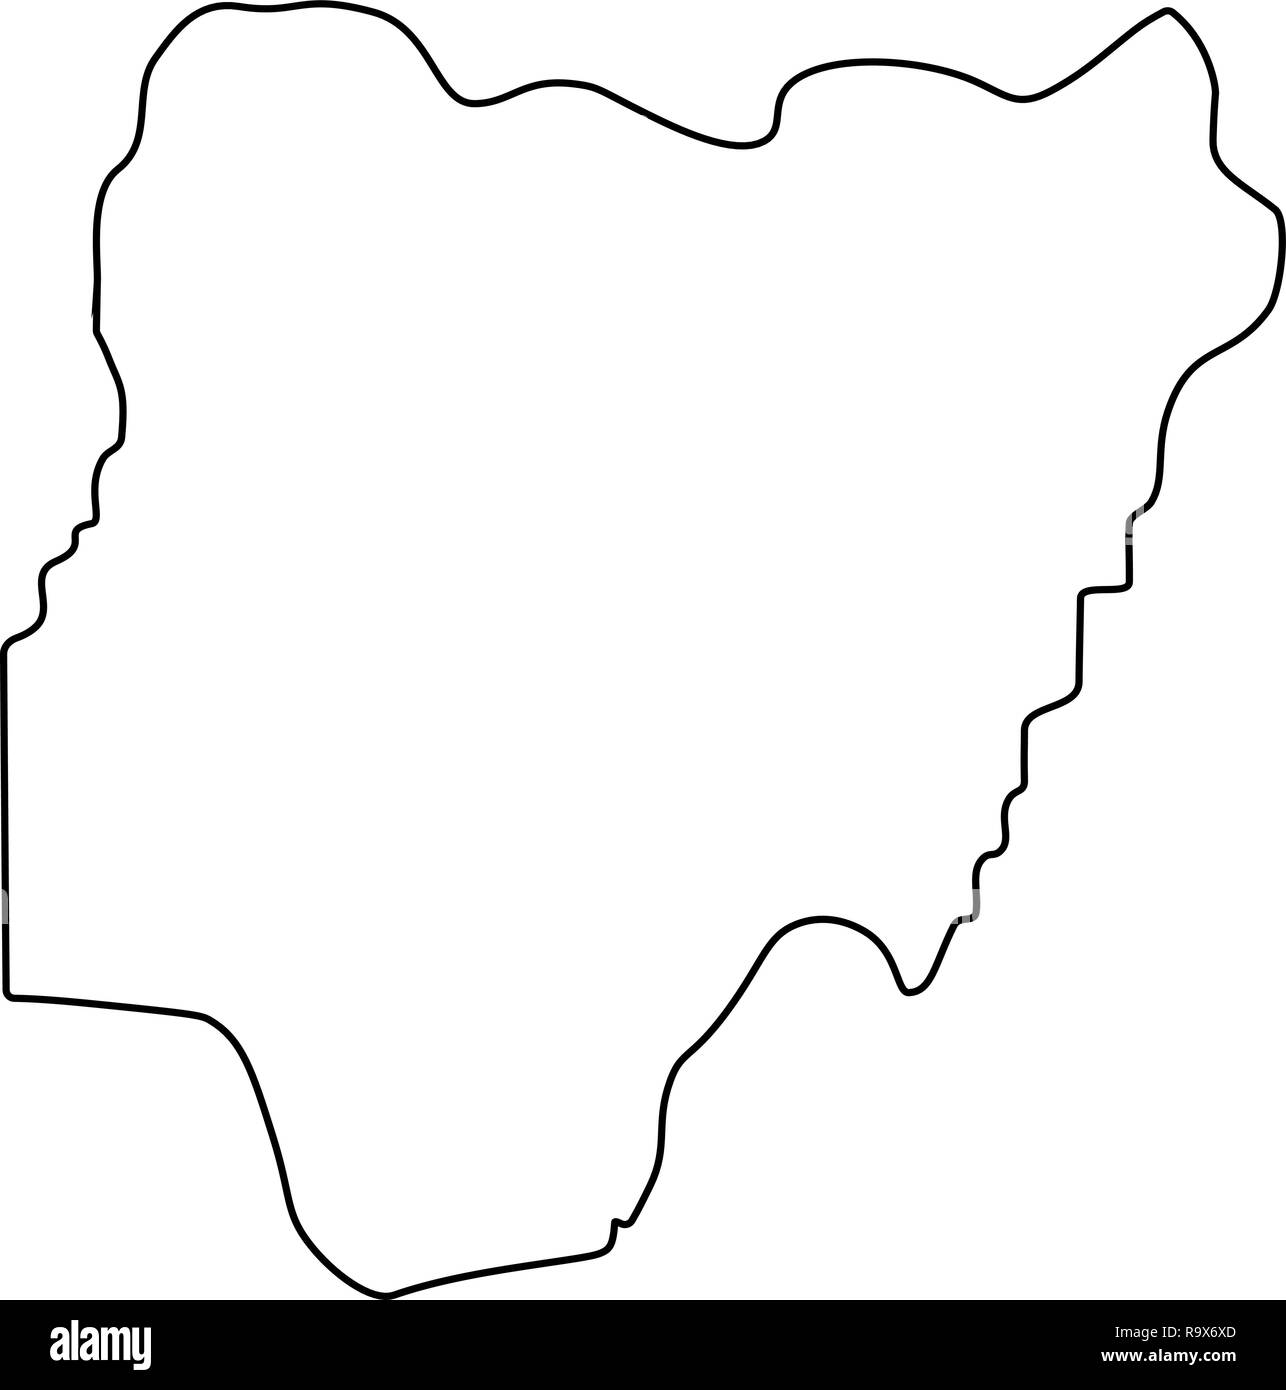 map of Nigeria - outline. Silhouette of Nigeria map vector illustration - Stock Image